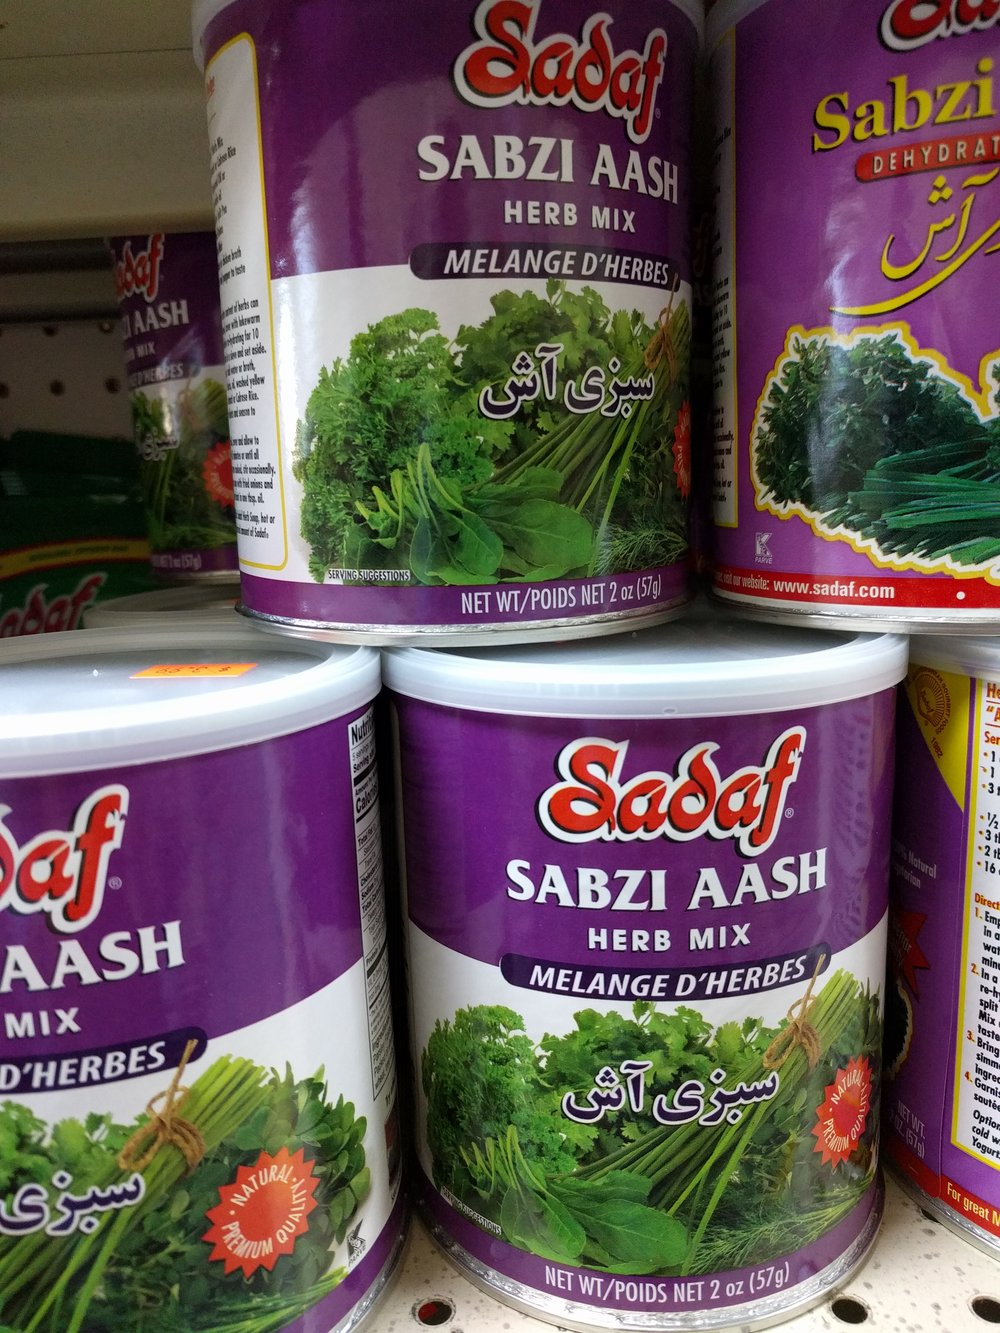 Sadaf-herb-mix-dry-Pak-Halal-International-Foods-12259-W-87th-St-Pkwy-Lenexa-KS-66215.jpg